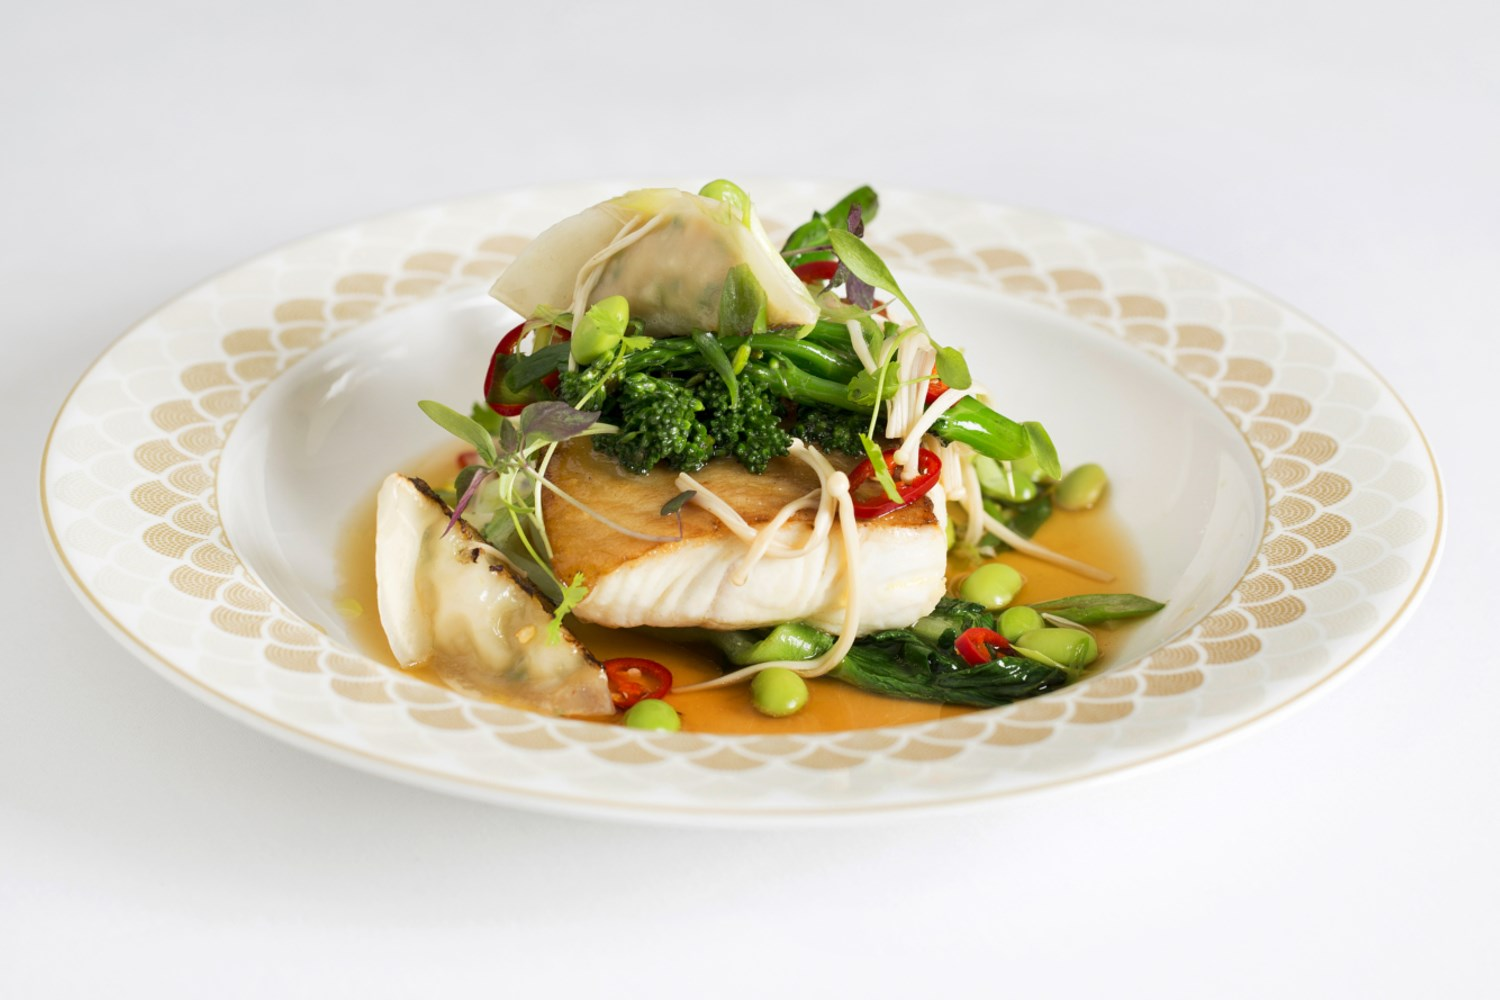 scotts fillet of halibut shrimp gyoza sprouting broccoli edamame beans dashi